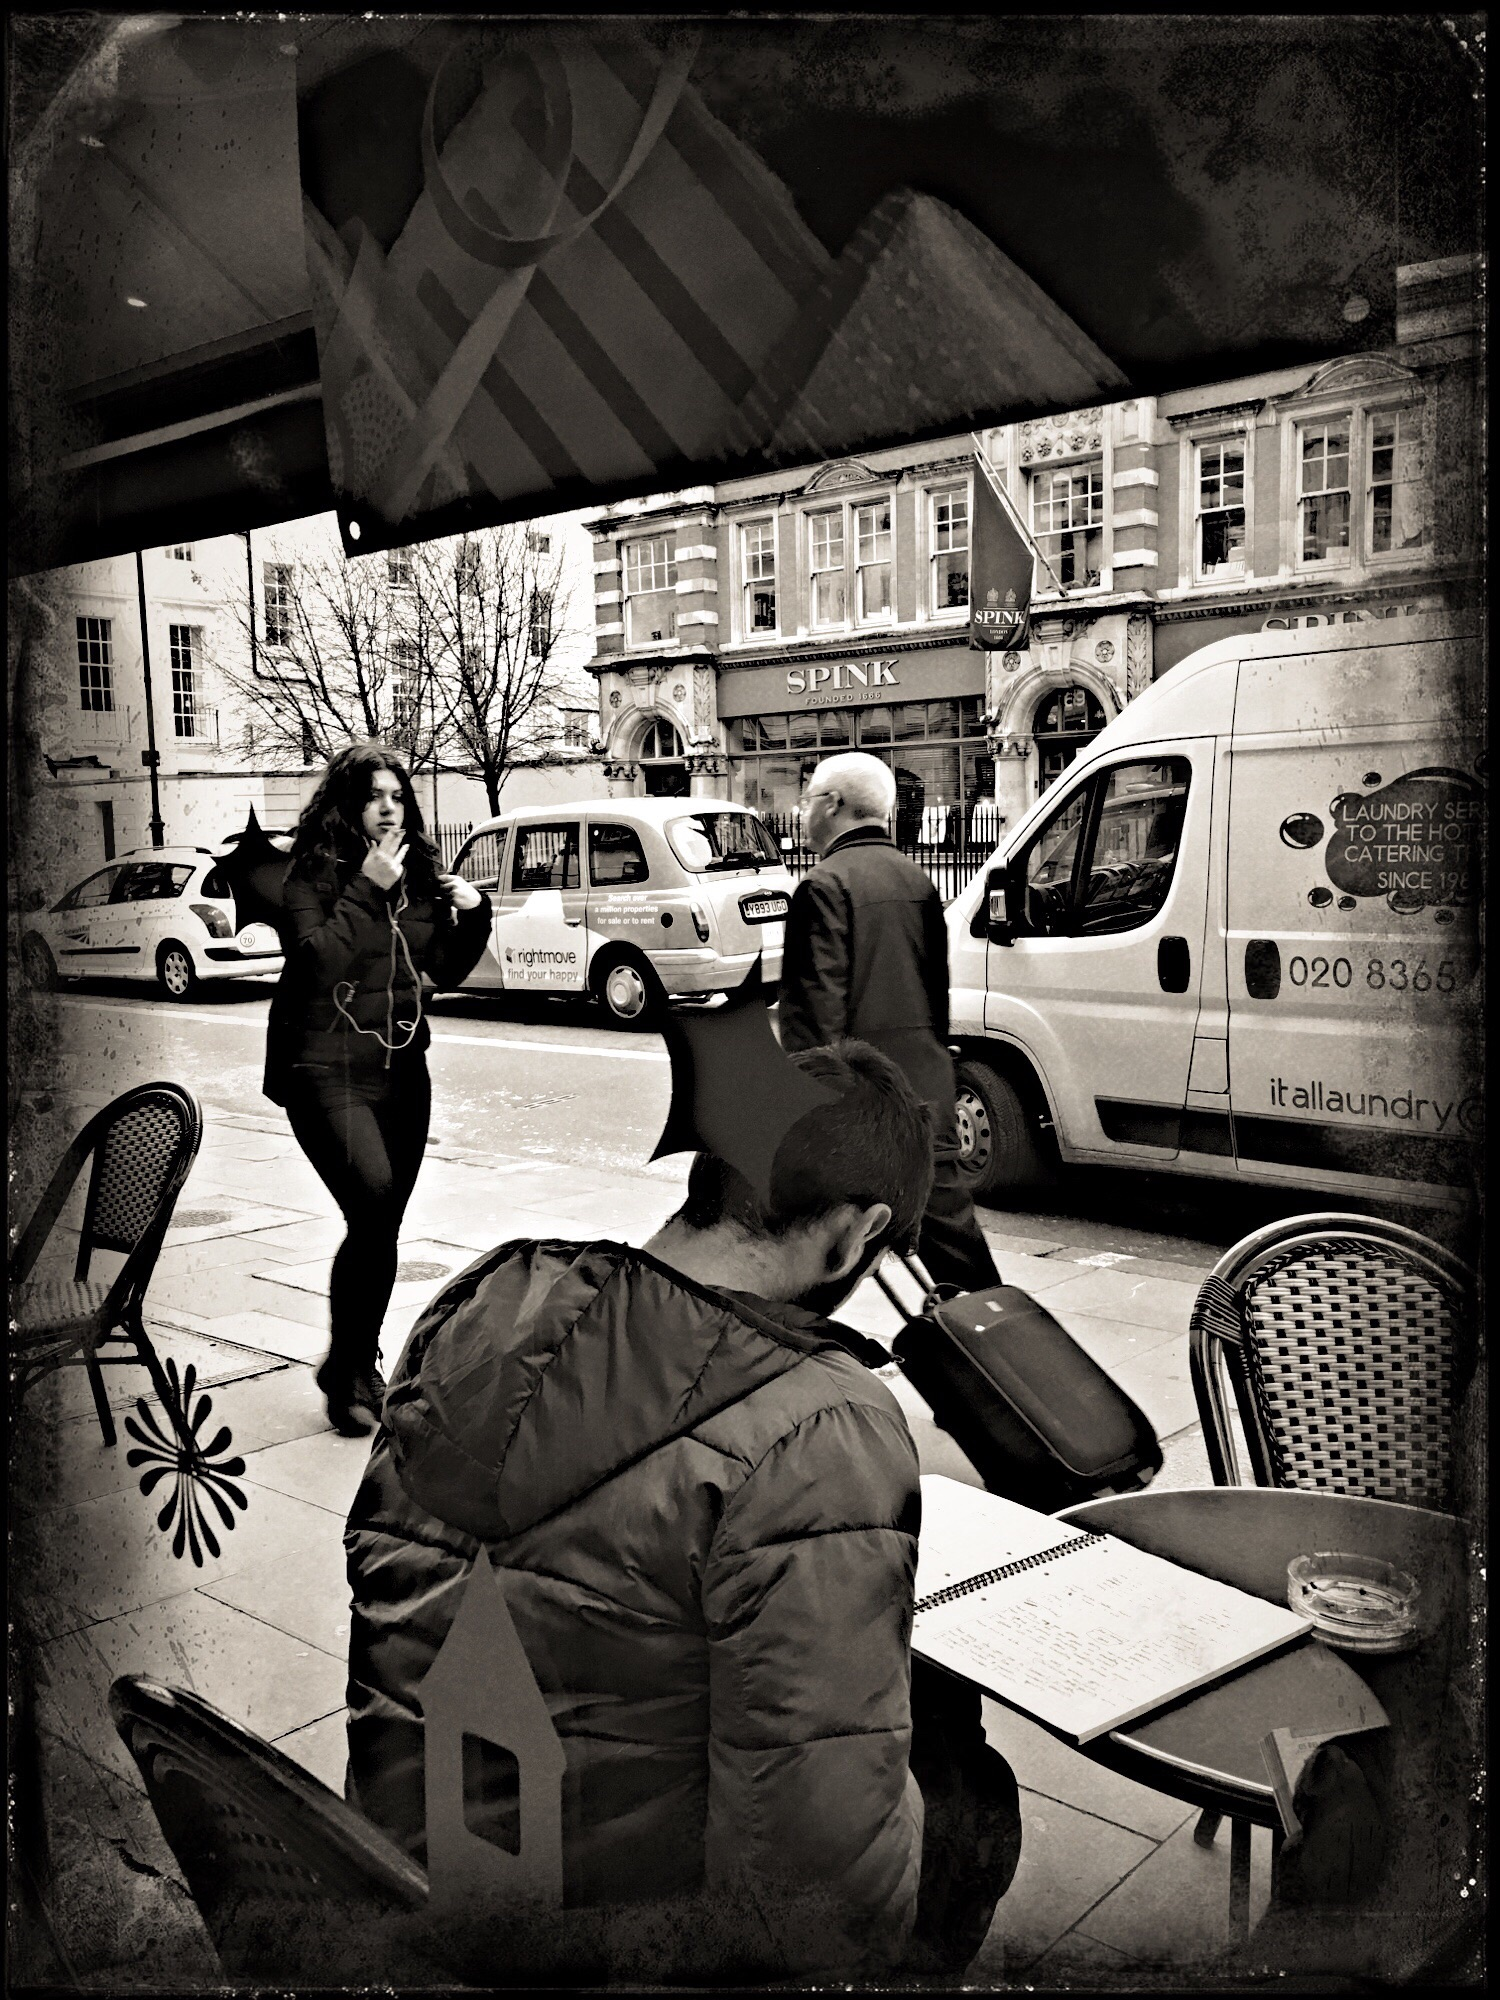 Peoplewatching in Cafe Nero